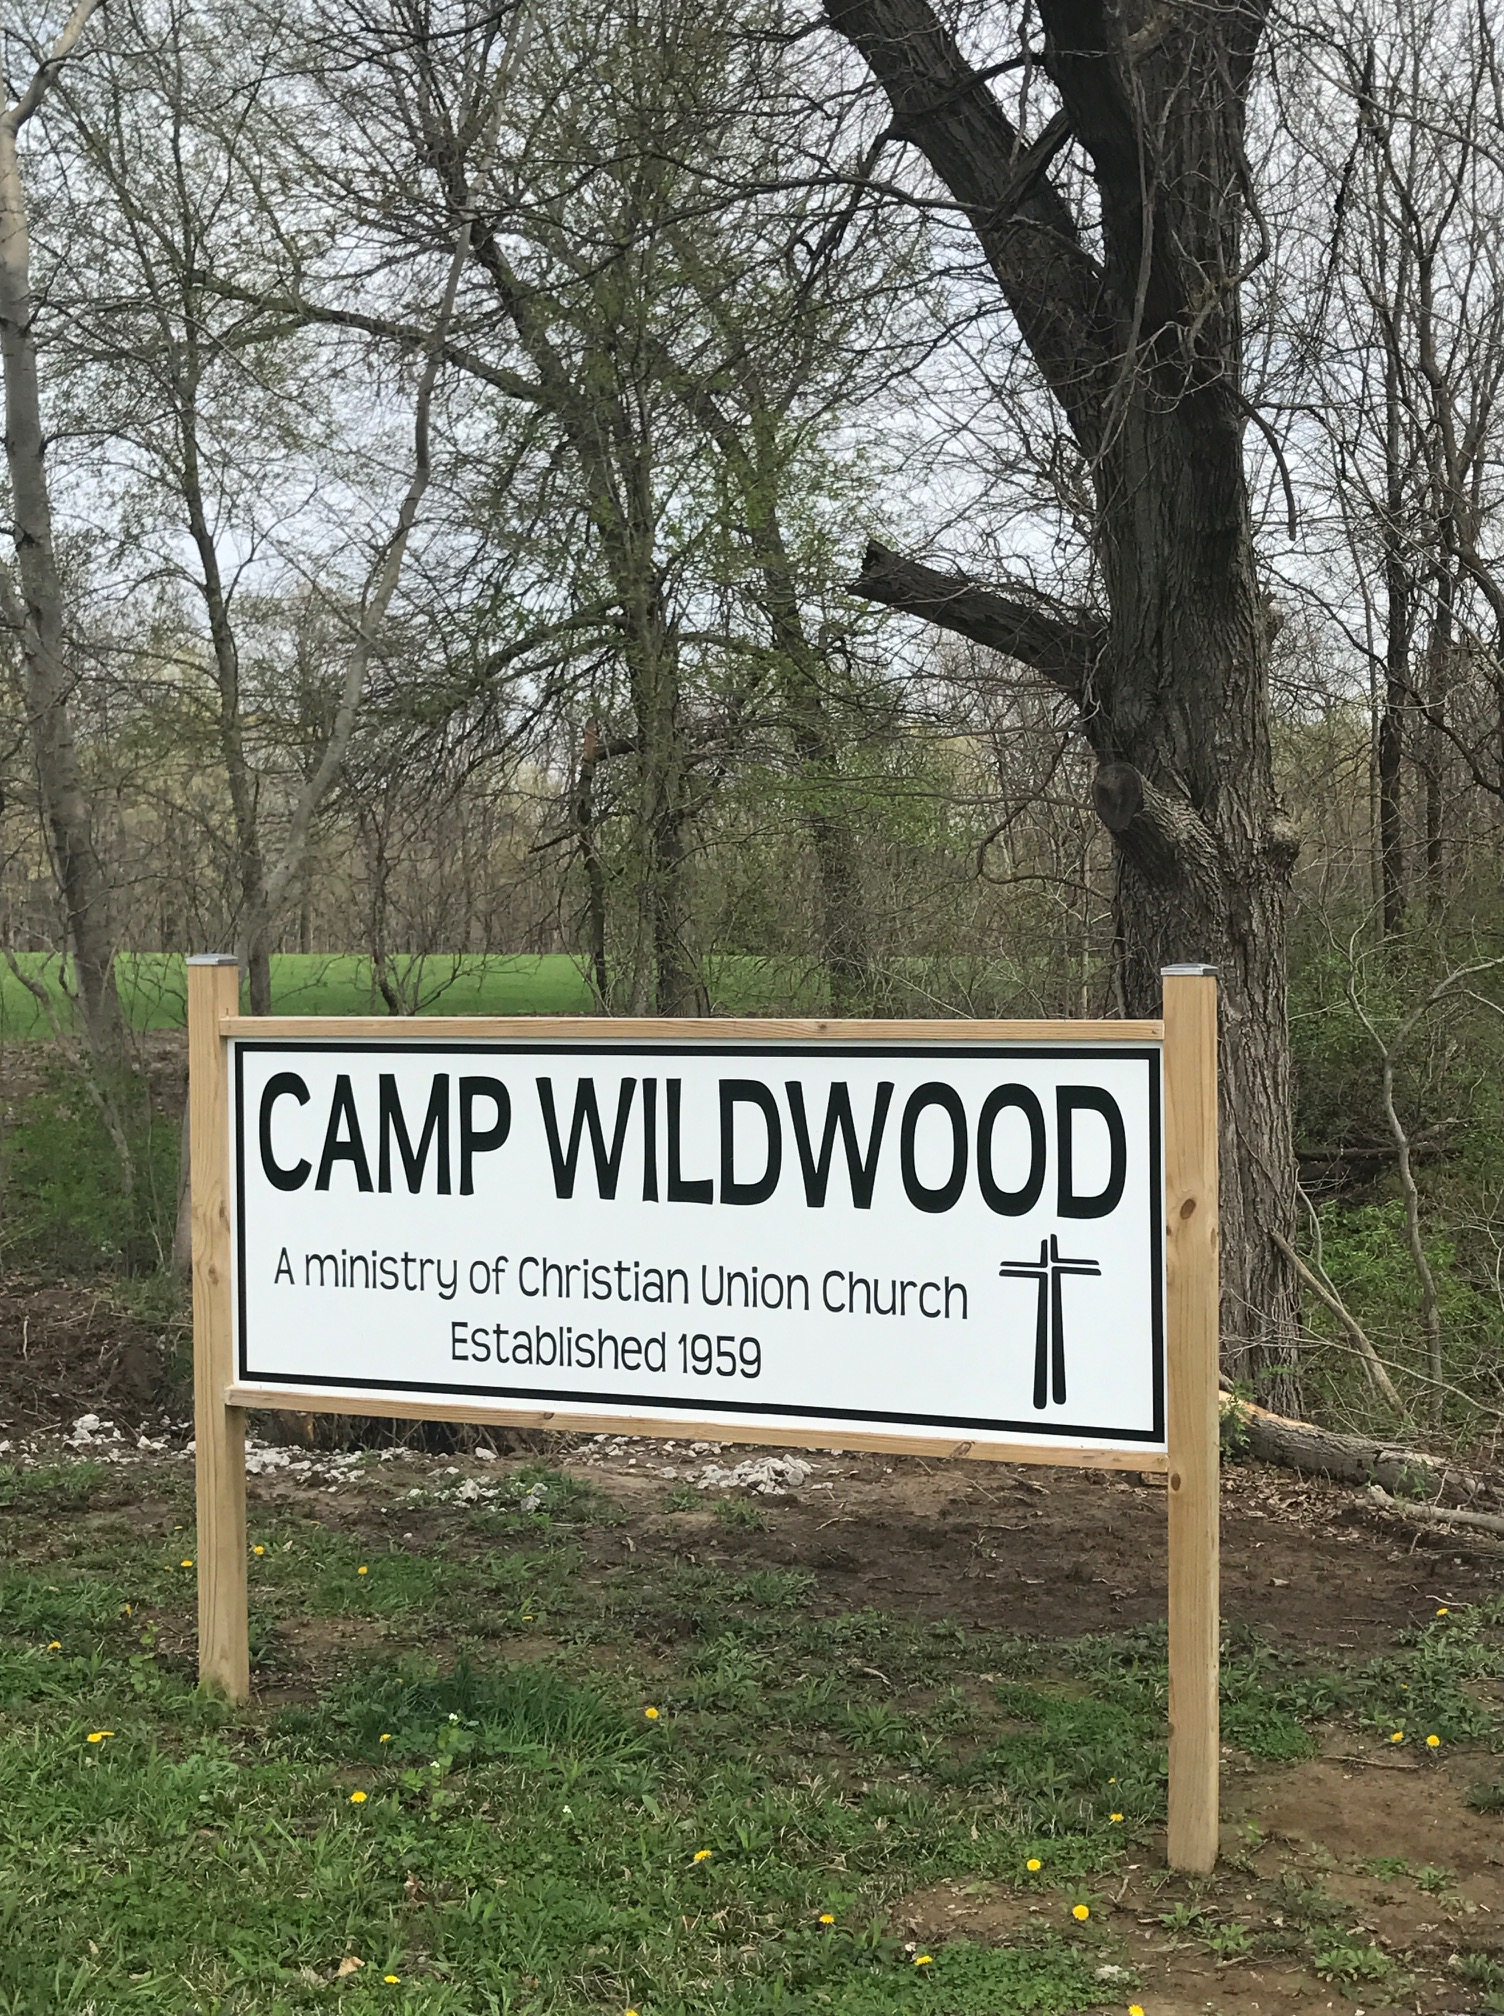 Camp Wildwood 1